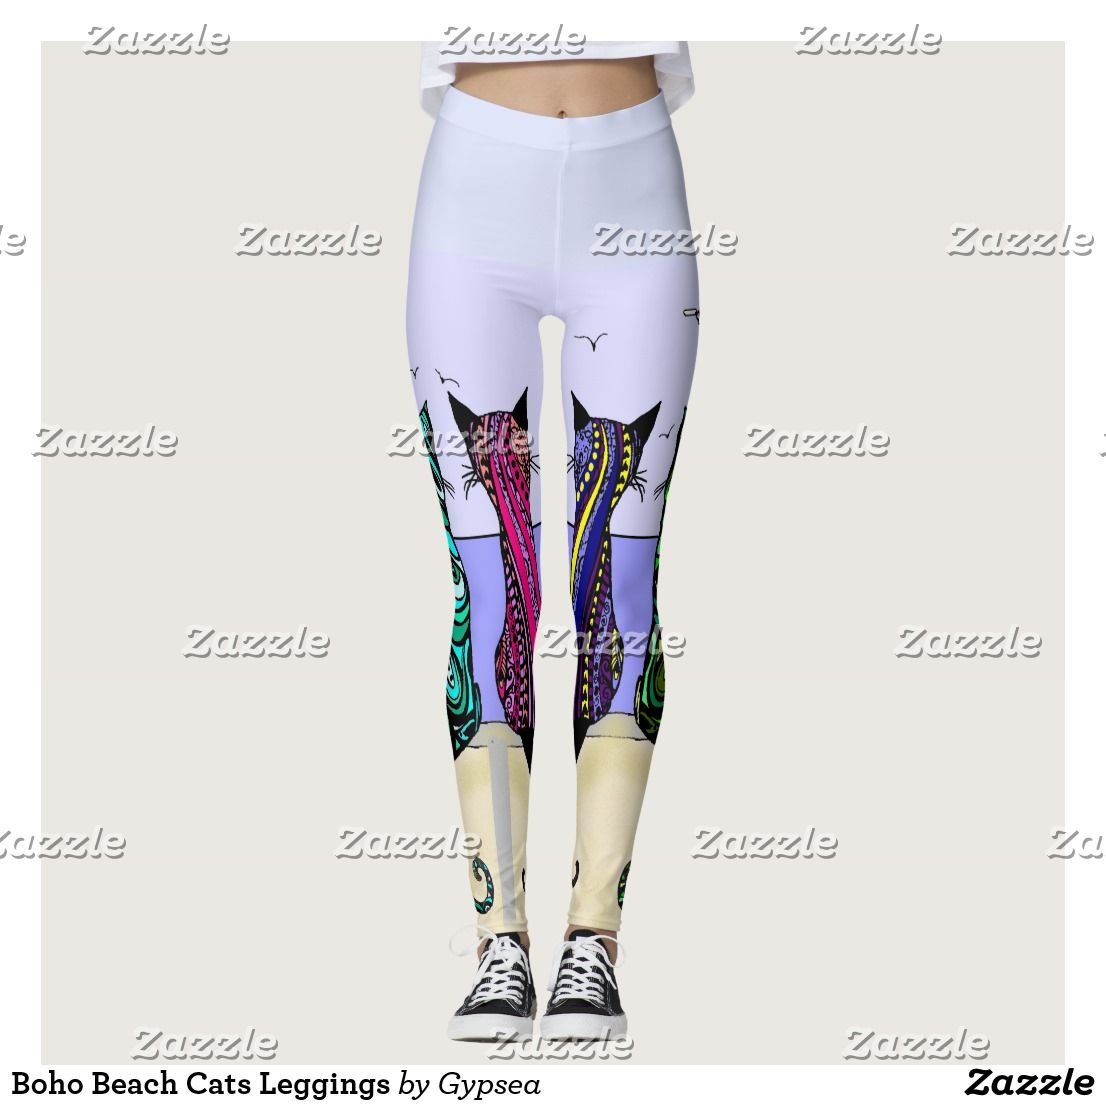 Boho Beach Cats Leggings (With Images)